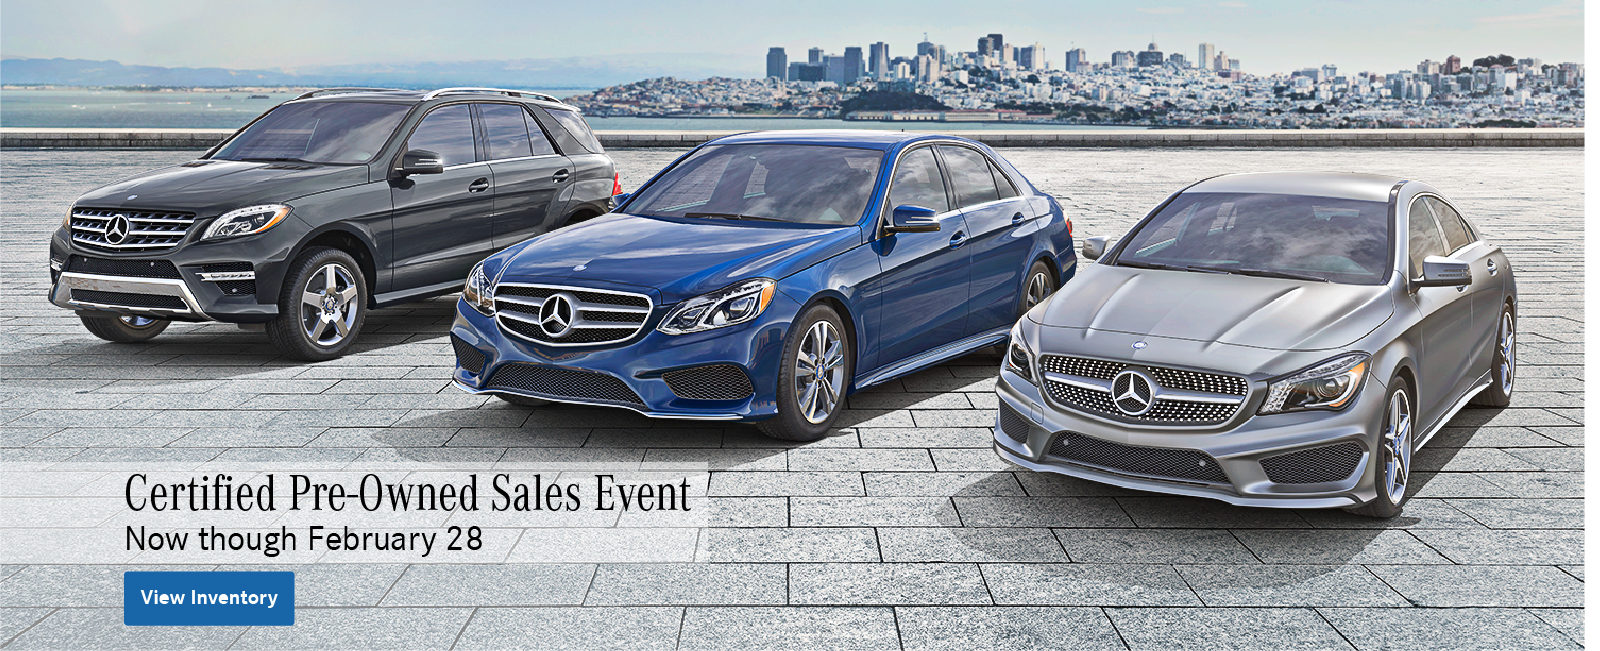 Mercedes benz manhattan in new york ny new used cars for Who owns mercedes benz now